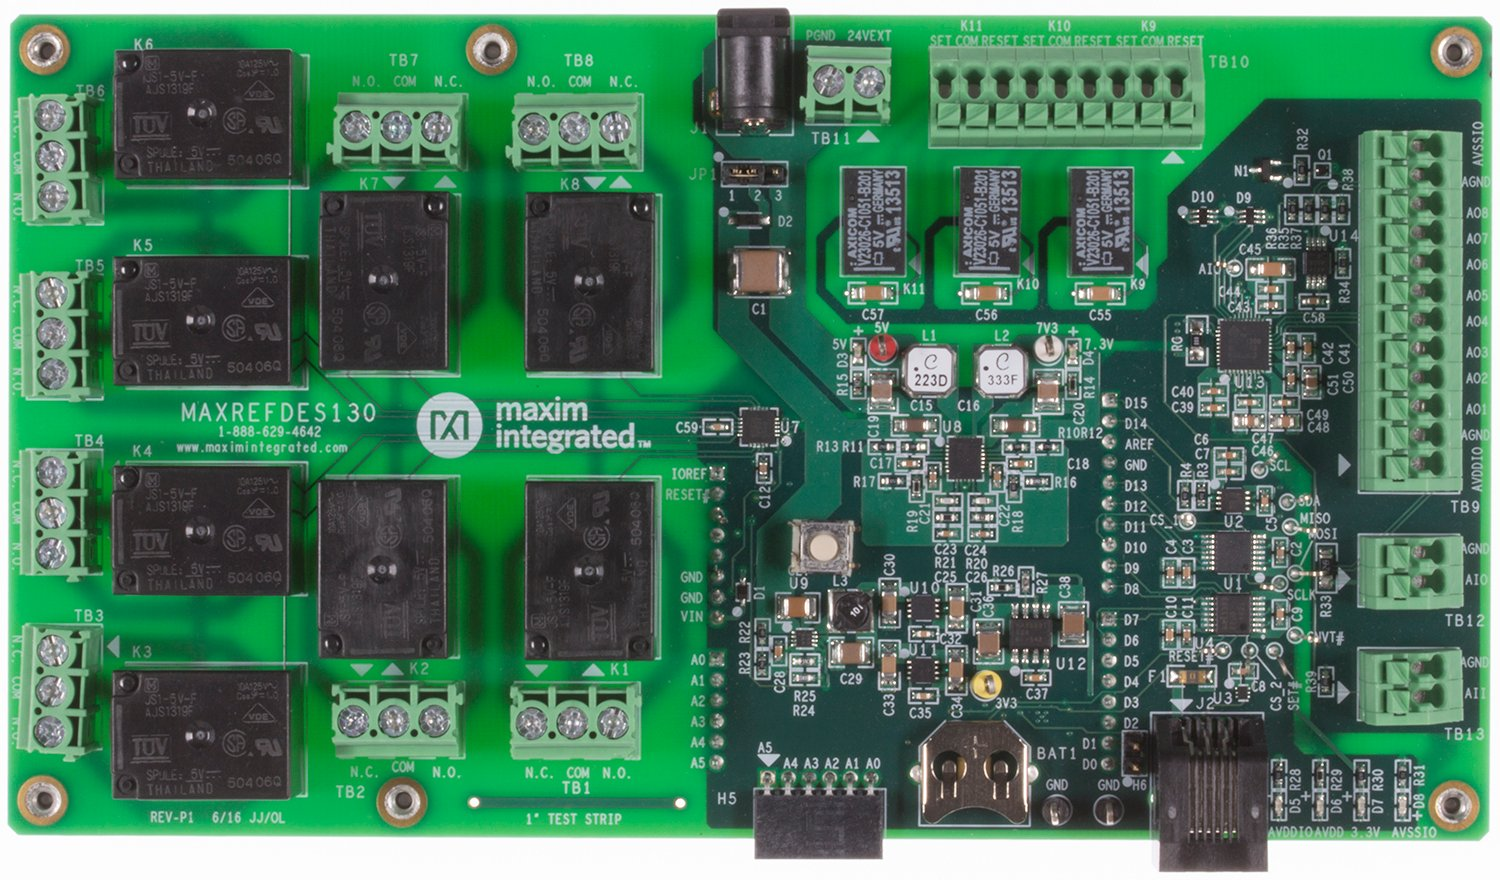 Maxrefdes130 Building Automation Shield Maxim Programmable Logic Microcontrollers Content From Electronic Design System Board